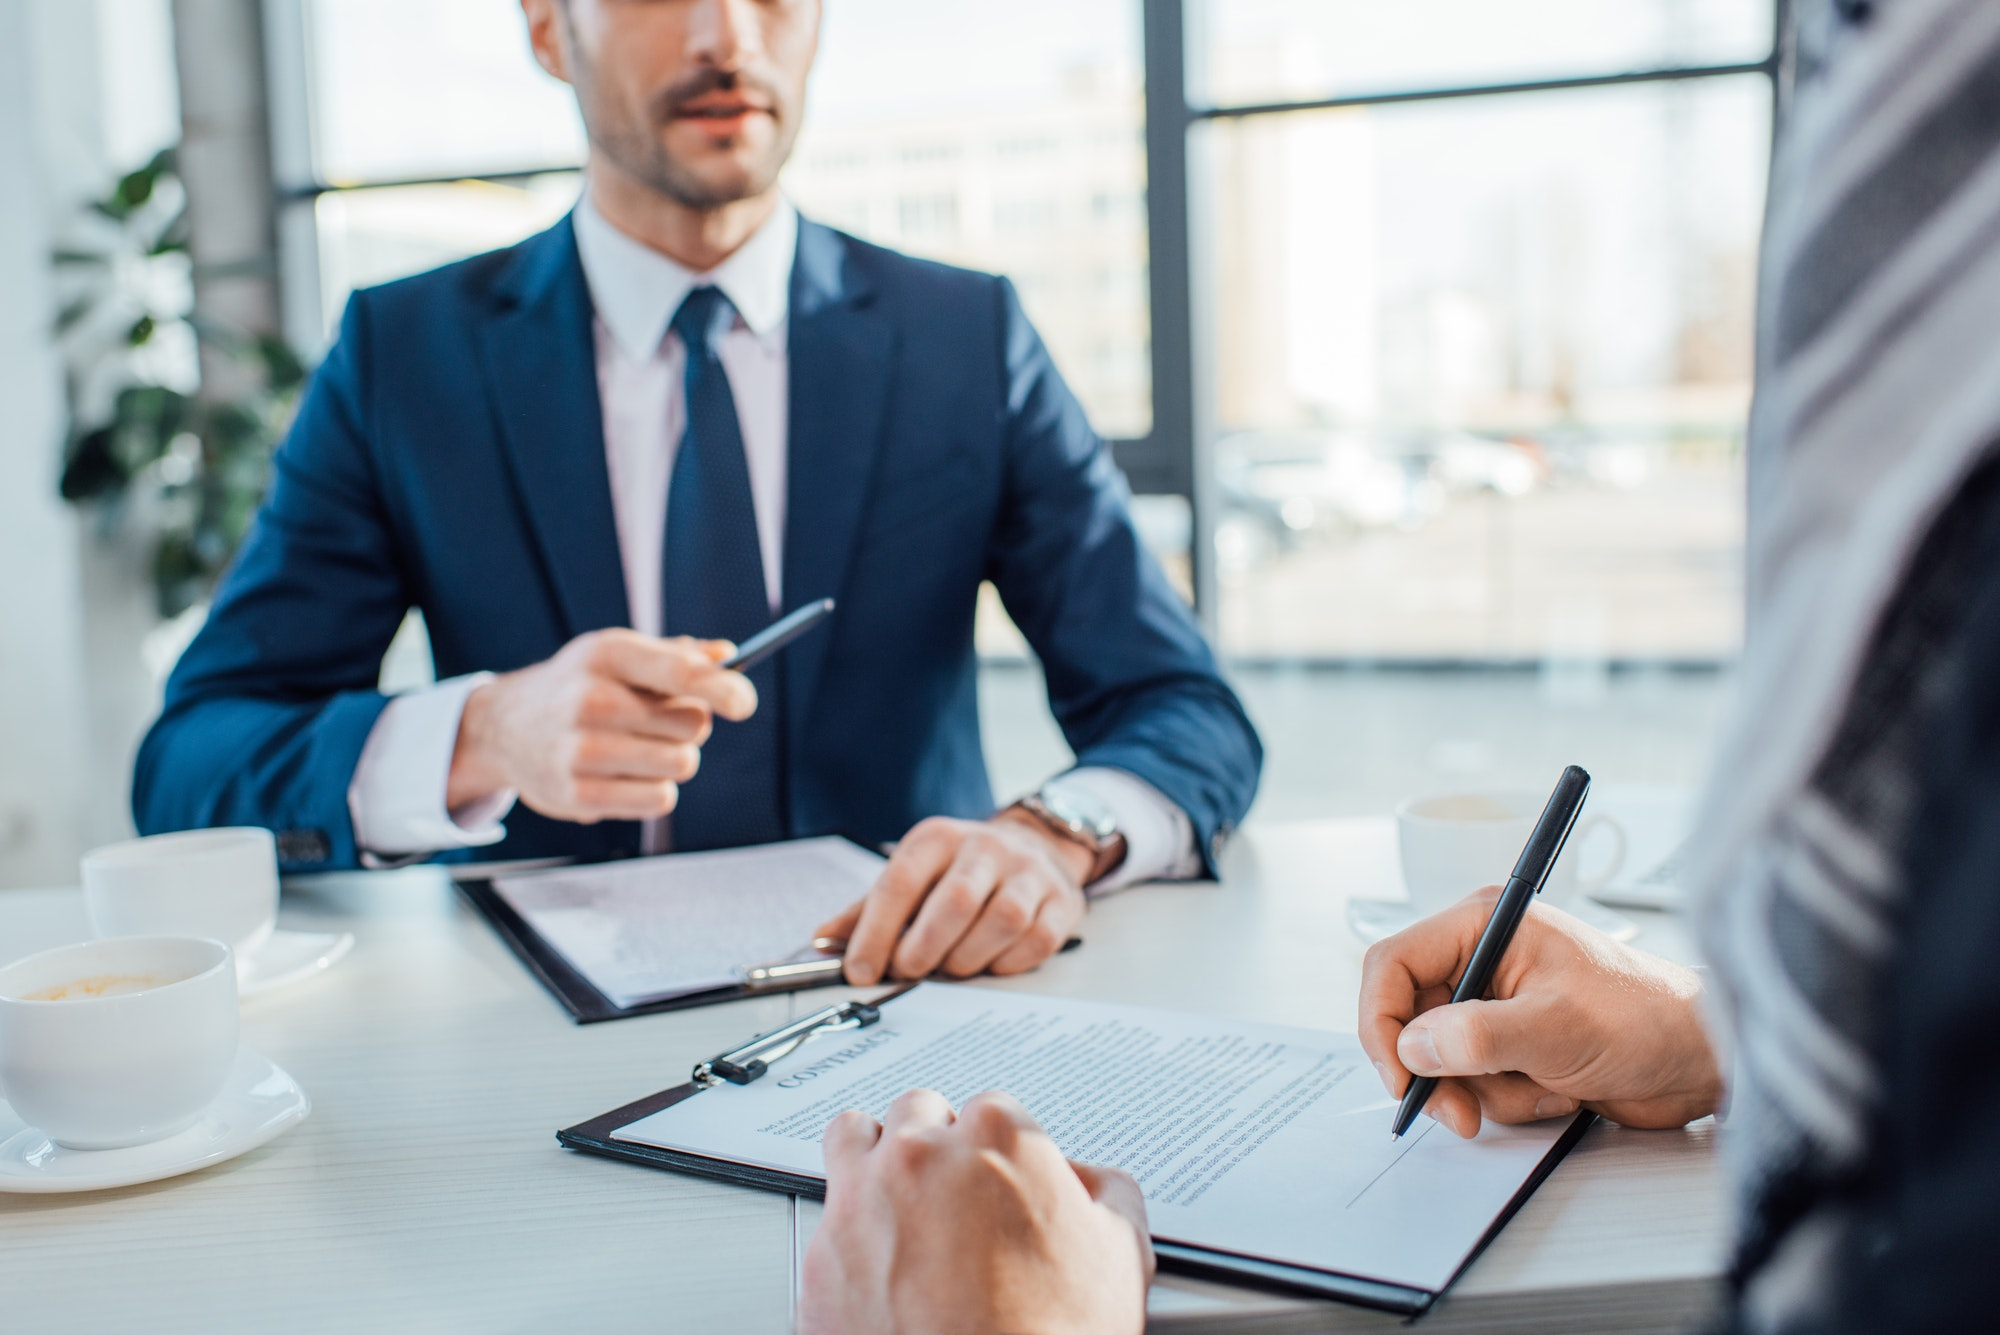 professional businessmen signing contract on meeting in modern office